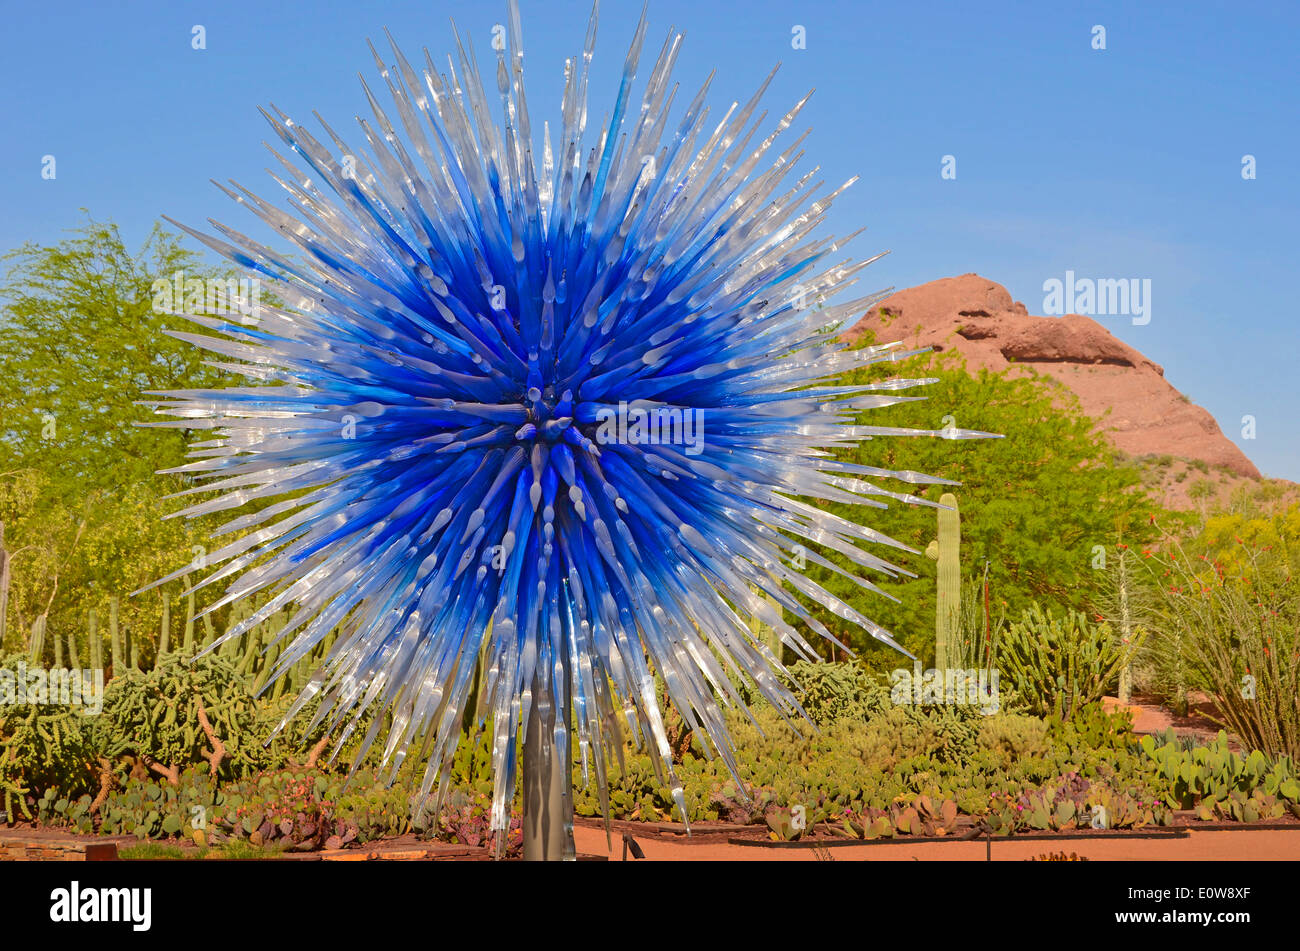 The legendary glass artist Dale Chihuly exhibited his work at The Desert Botanical Gardens in Phoenix, Arizona, Stock Photo